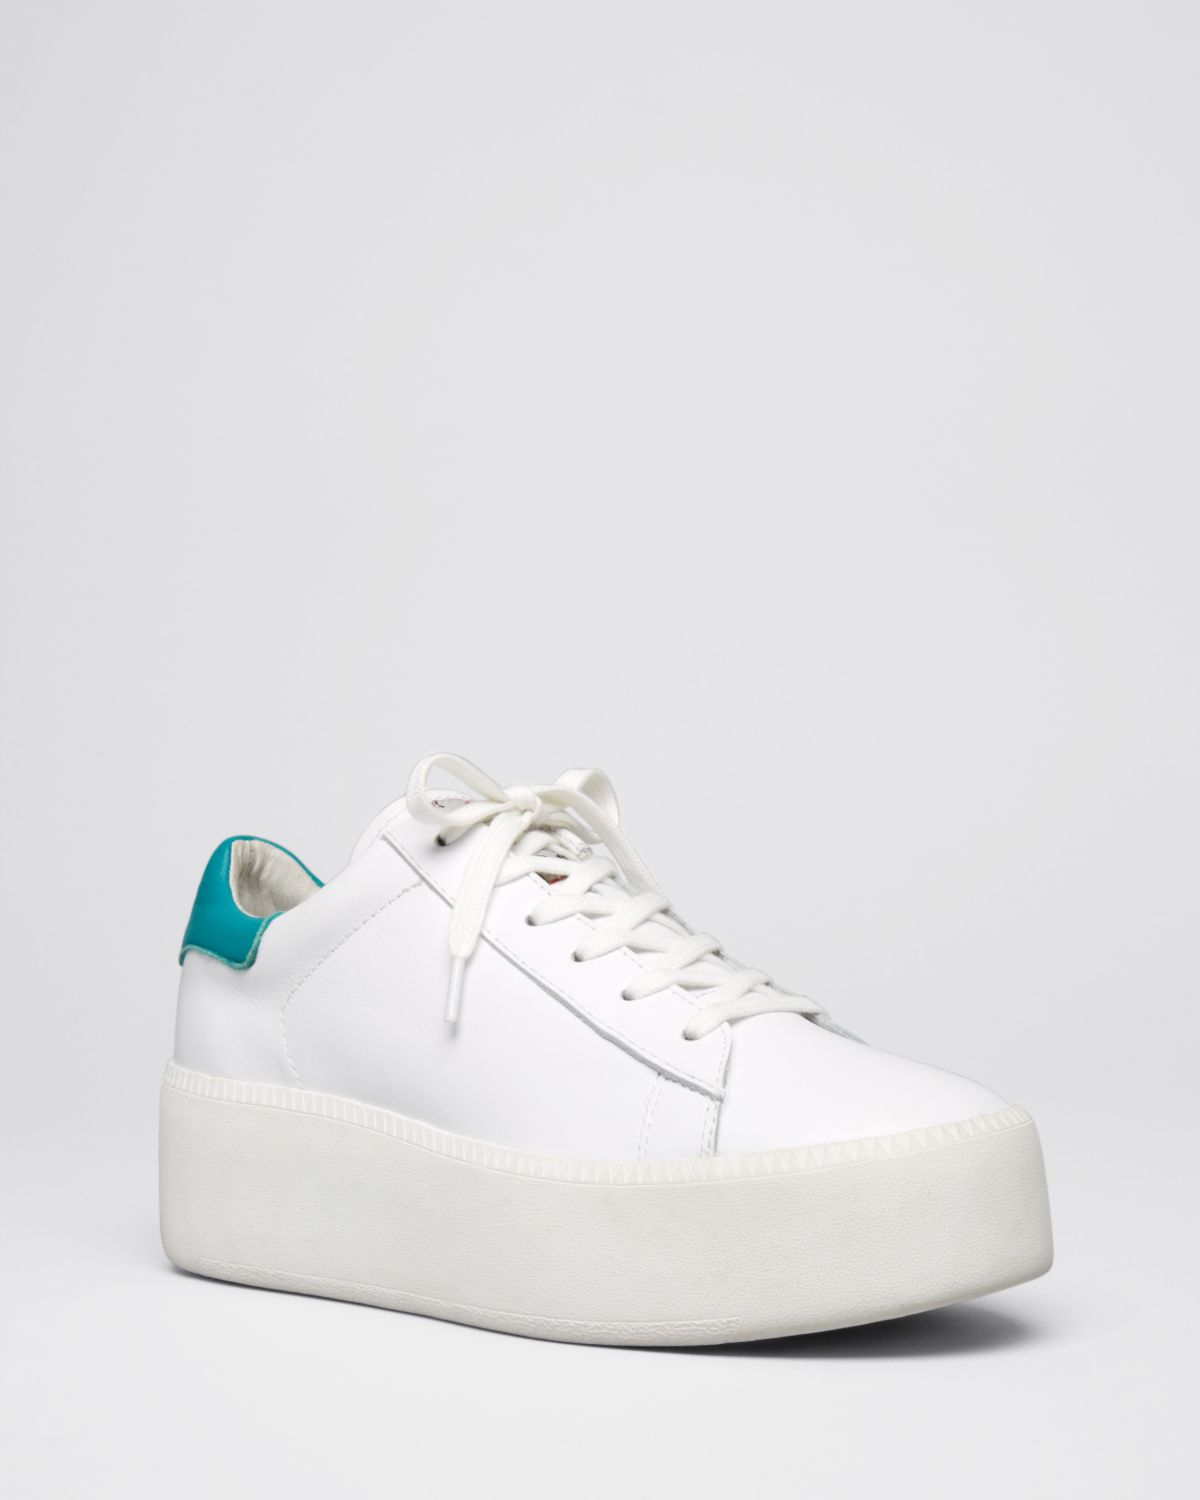 054517ae8 Ash Platform Lace Up Sneakers - Cult in White - Lyst